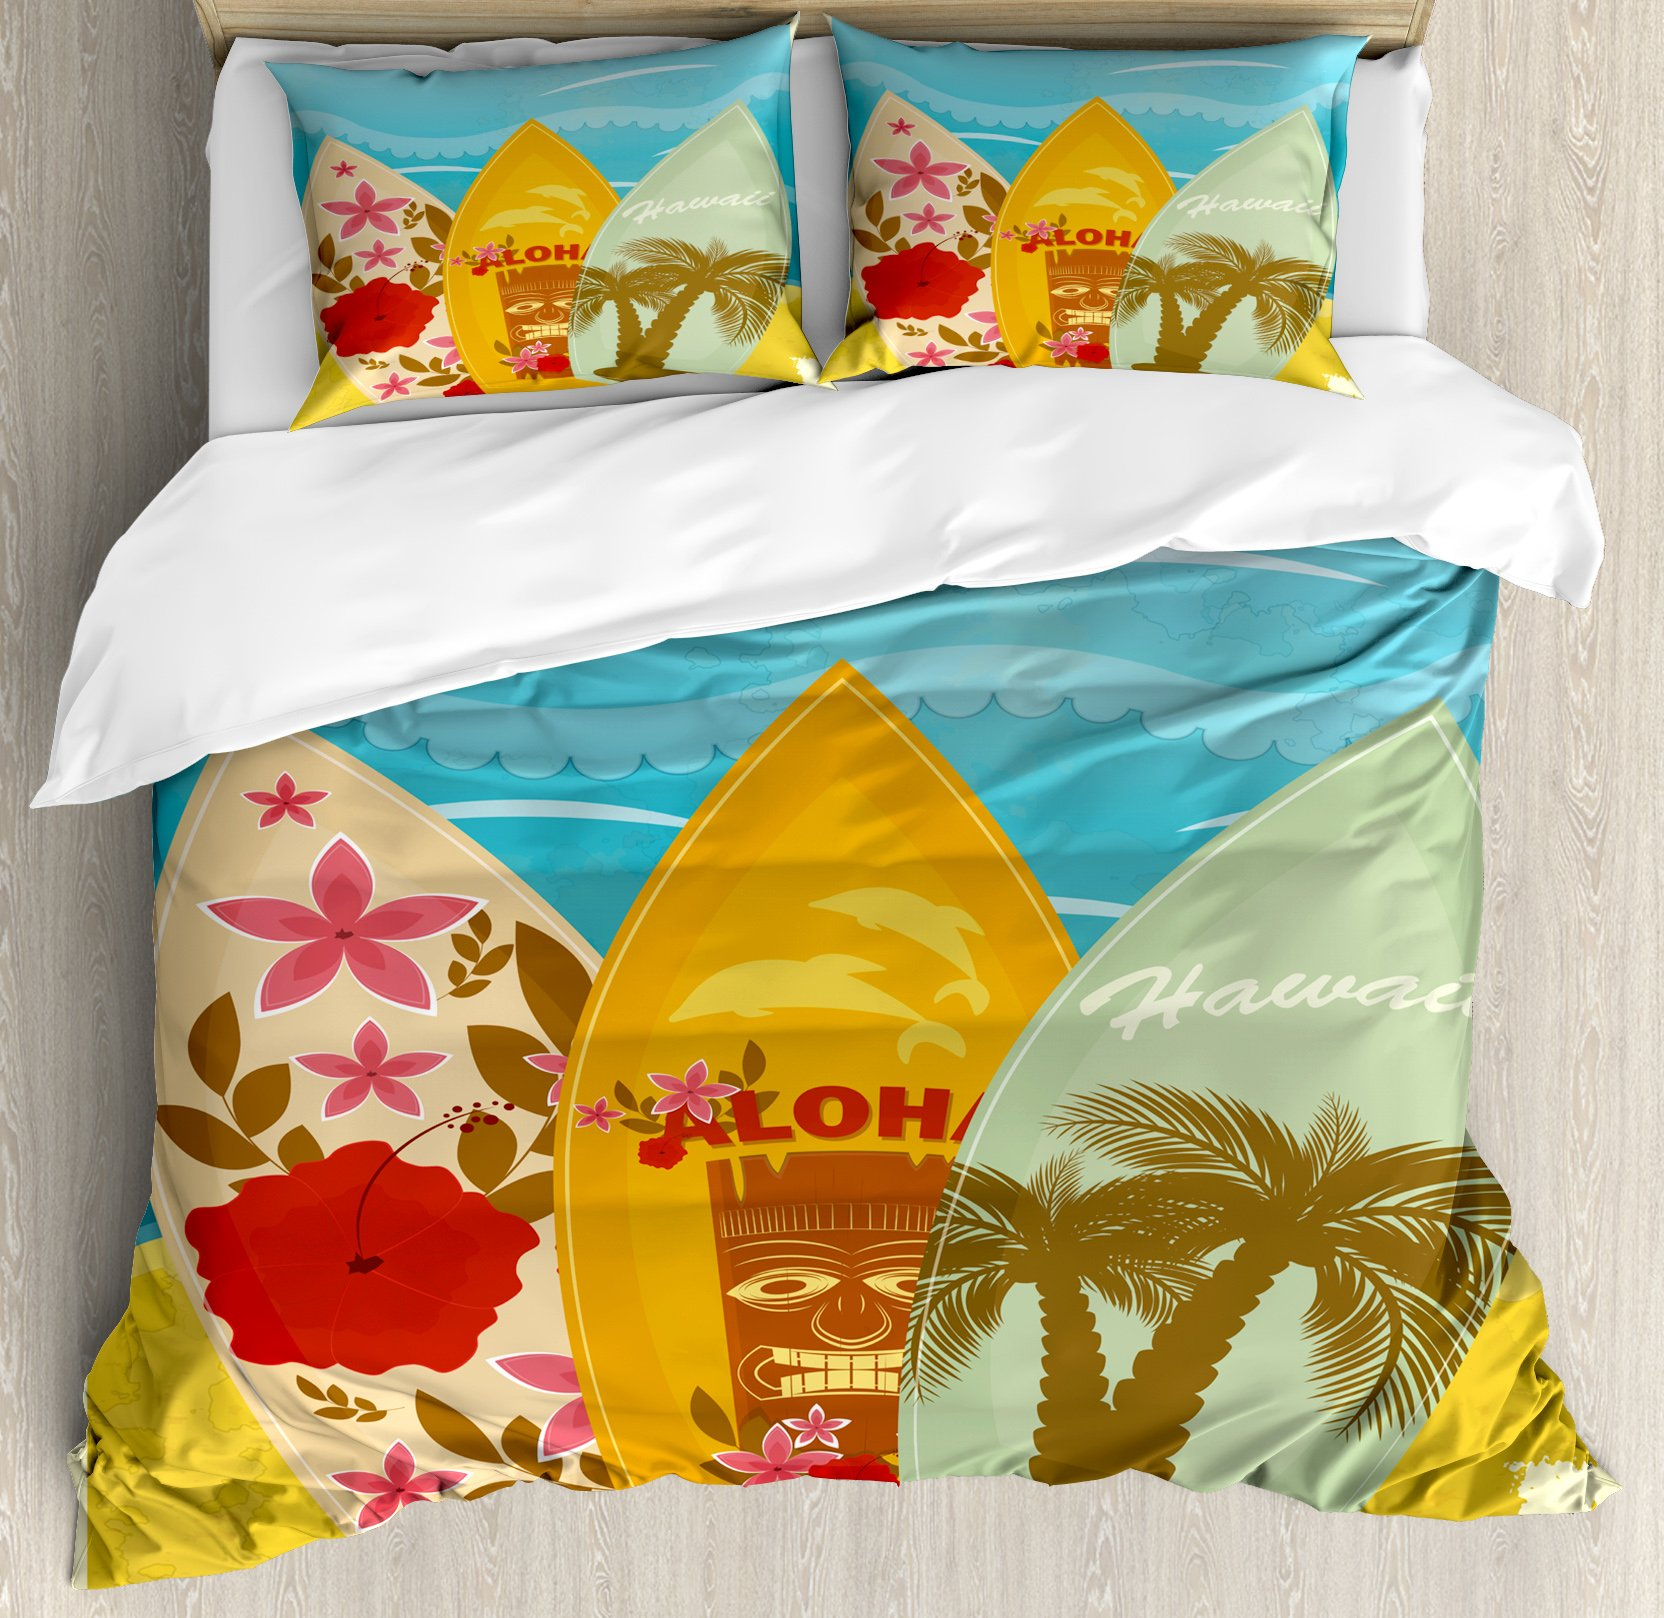 Ambesonne Tiki Bar Decor Duvet Cover Set Queen Size by, Hawaiian Beach Surfboards on Sand Exotic Summer Vacation Sport Vintage Style, Decorative 3 Piece Bedding Set with 2 Pillow Shams, Multicolor